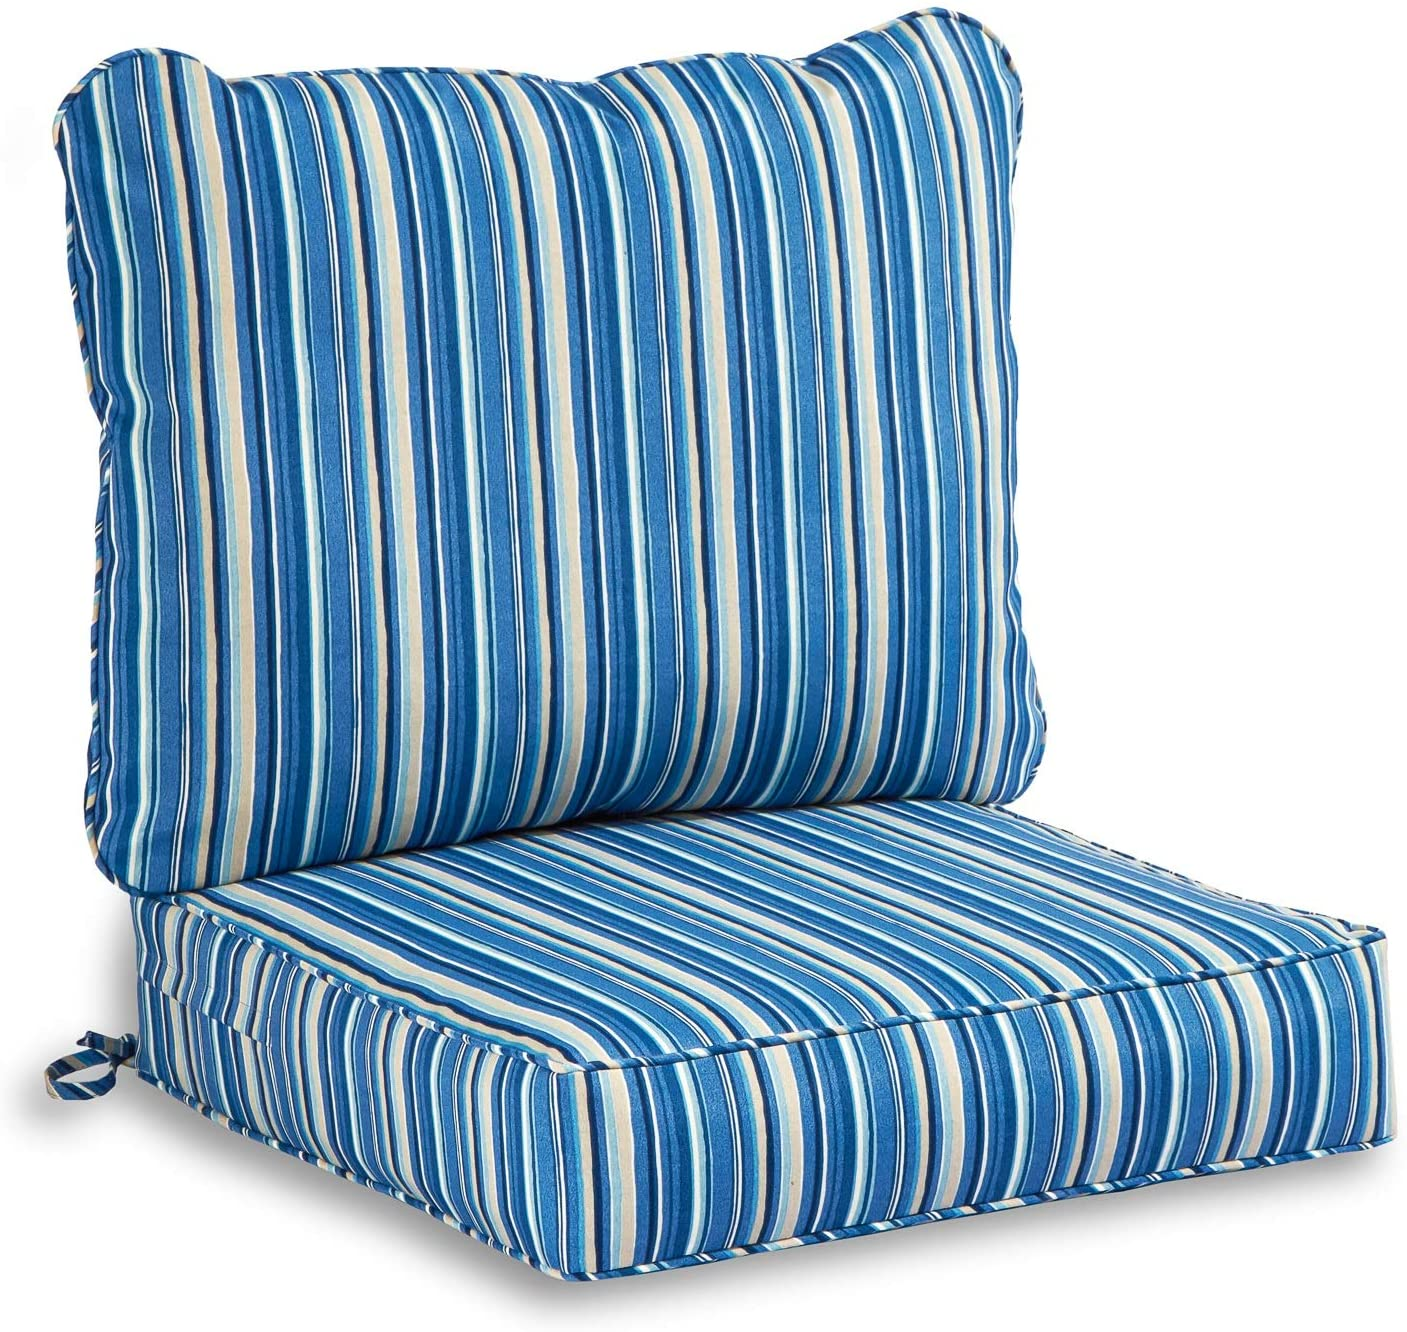 South Pine Porch AM7820-SAPPHIRE Sapphire Stripe 2-Piece Outdoor Deep Seat Cushion Set